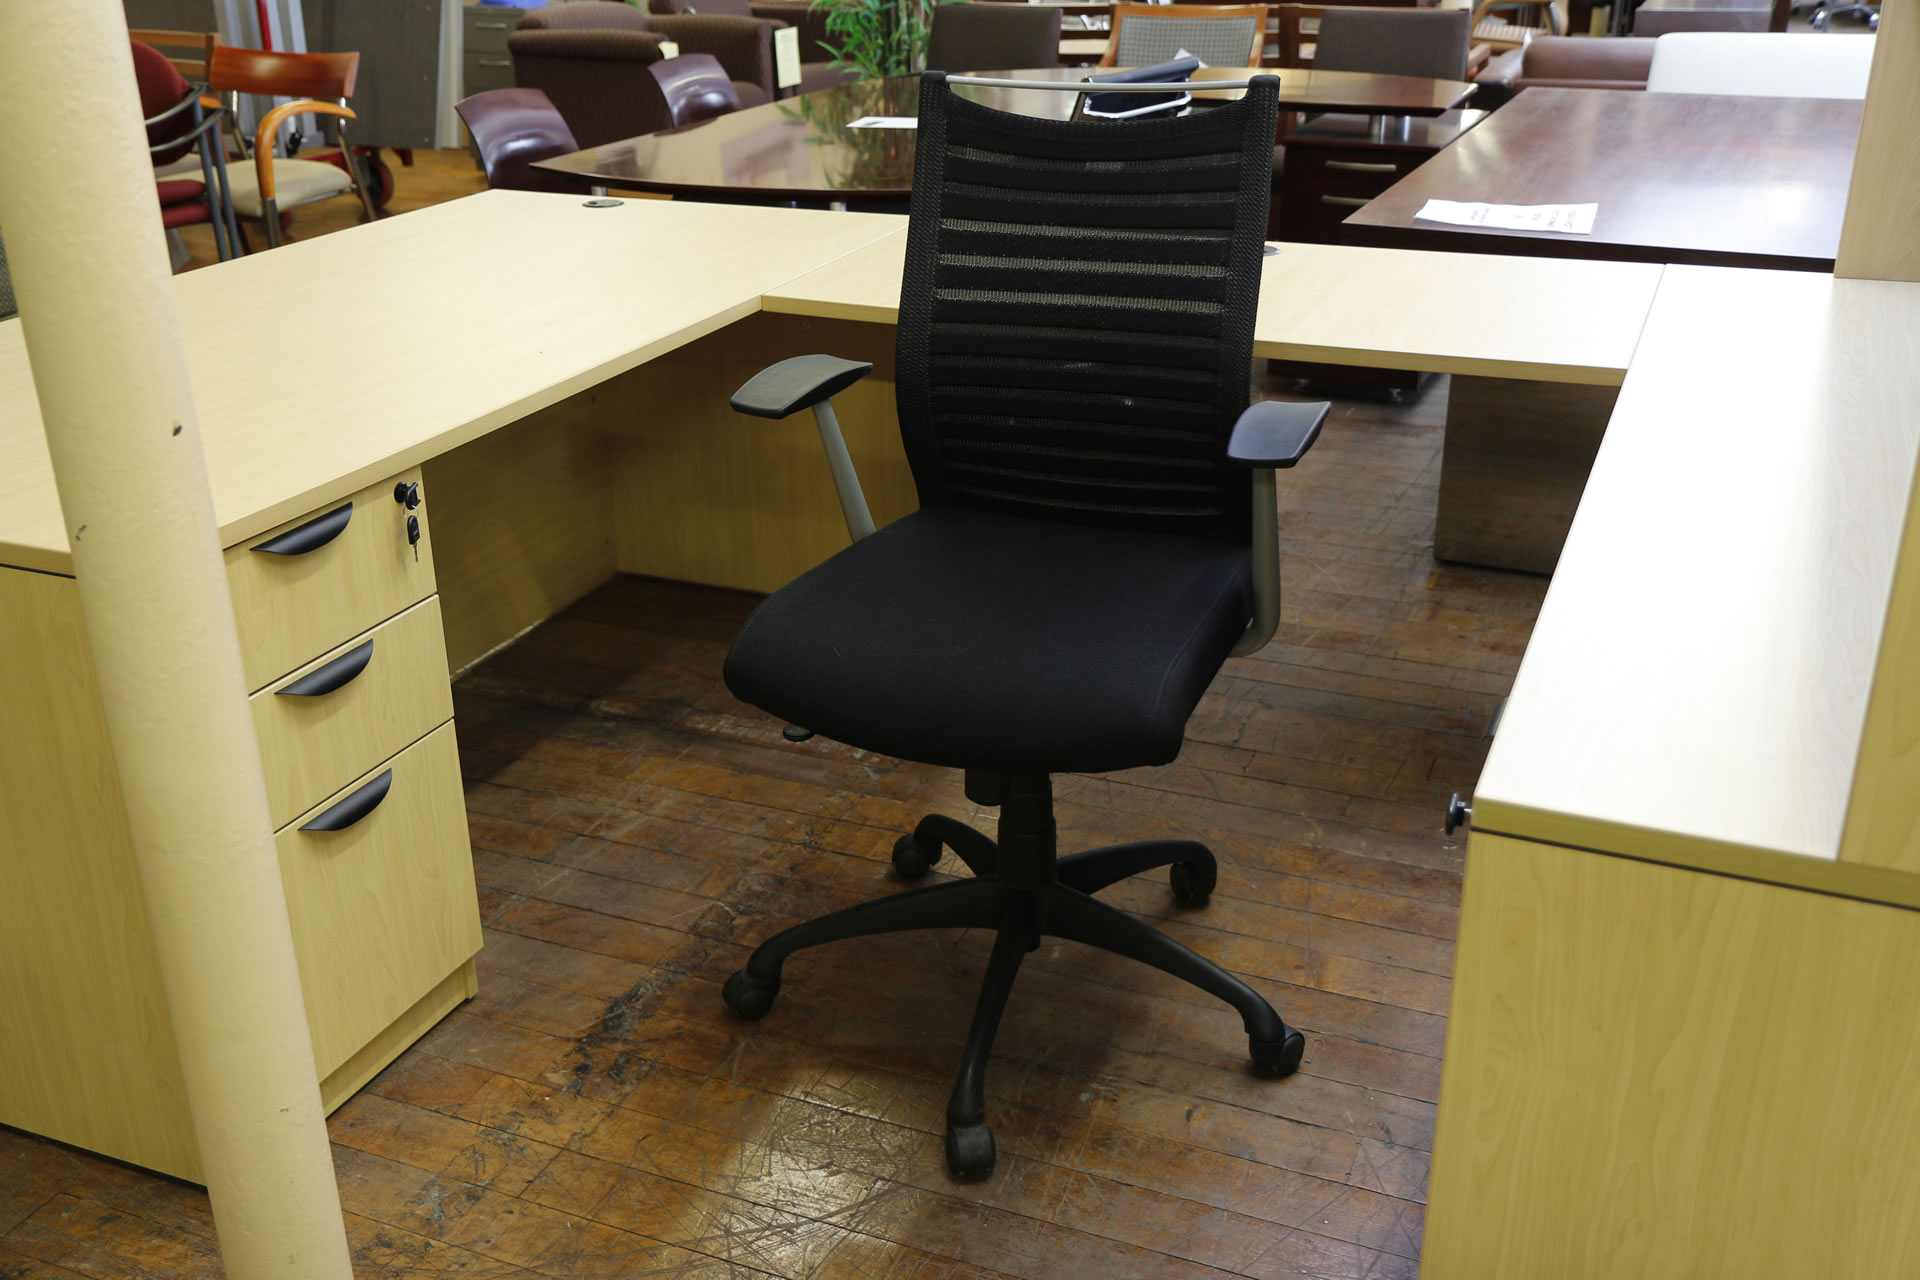 peartreeofficefurniture_peartreeofficefurniture_peartreeofficefurniture_2015-06-18_20-13-05.jpg